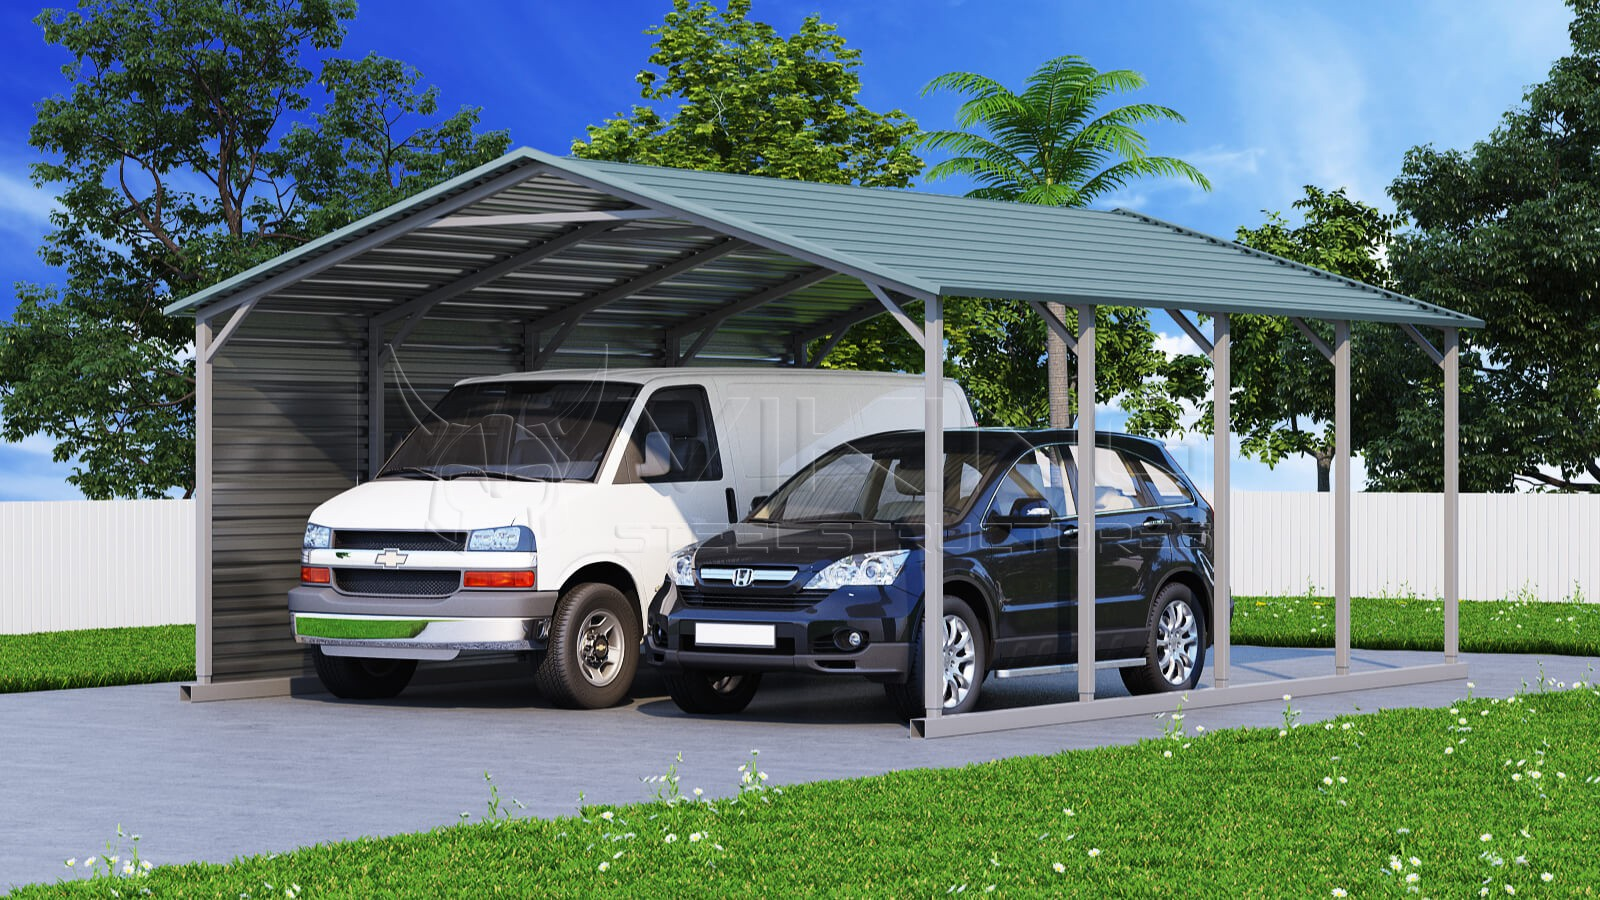 metal carport for sale near me how to buy carport. Black Bedroom Furniture Sets. Home Design Ideas